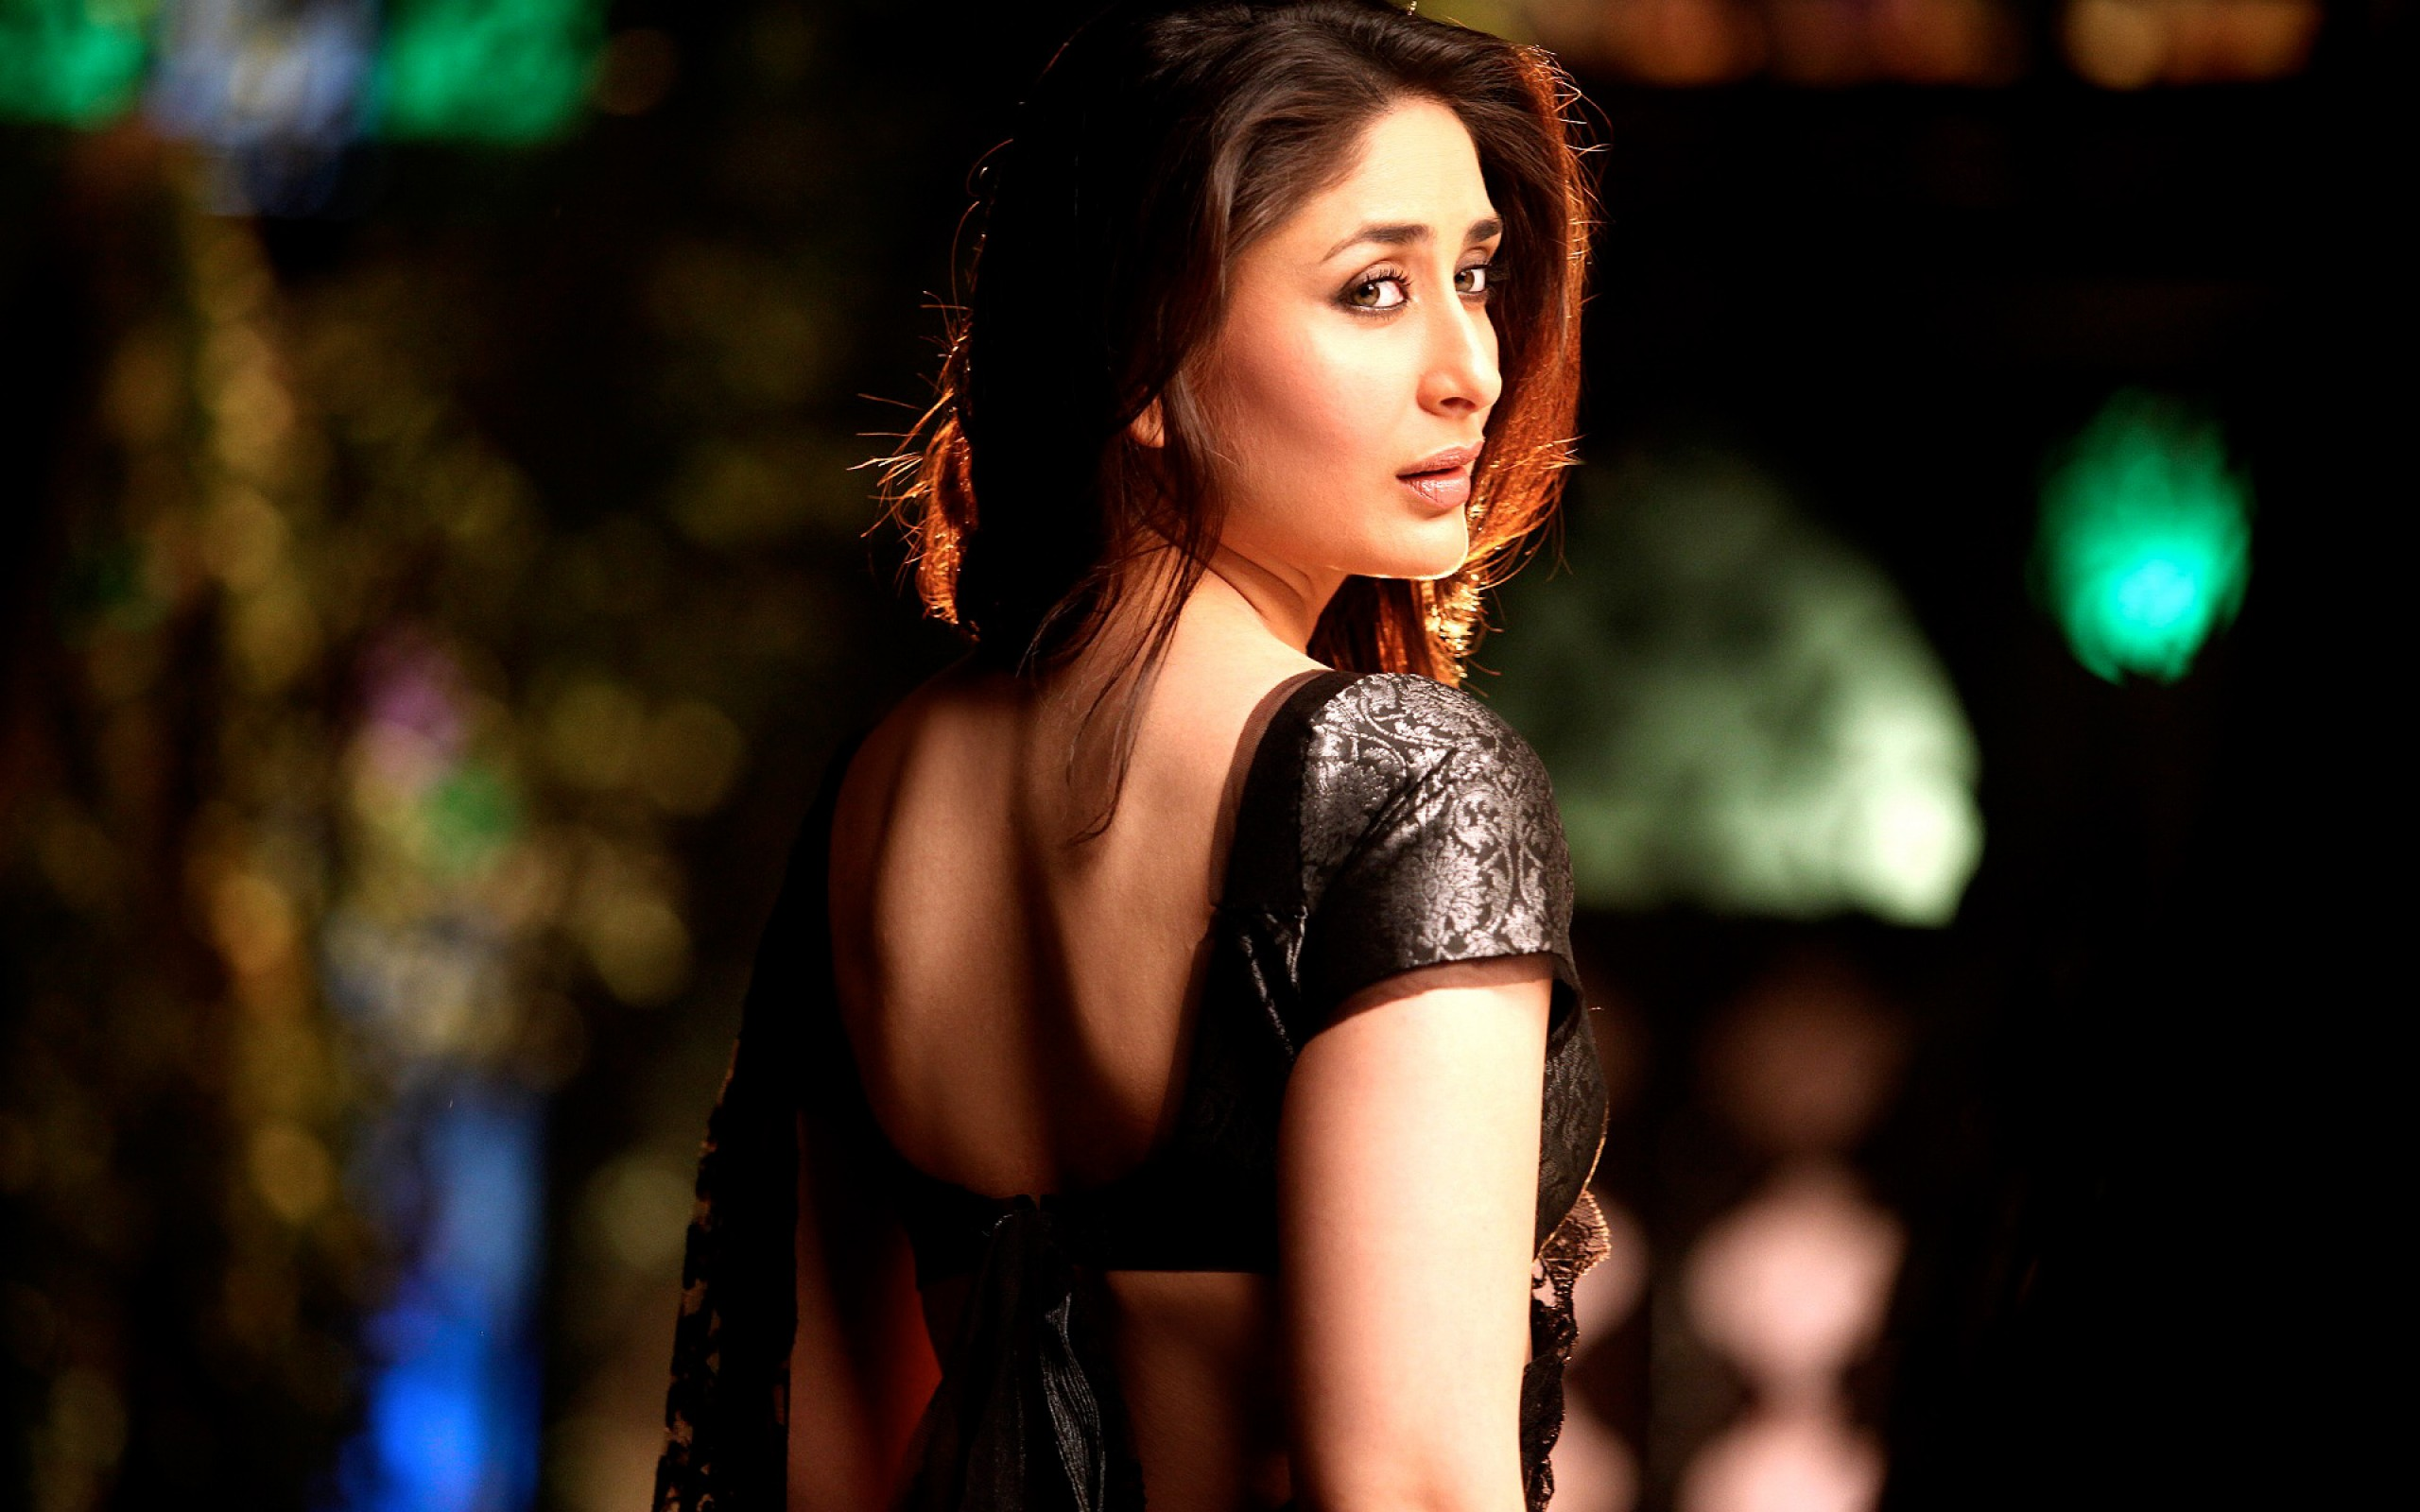 14 2015 By Stephen Comments Off on Kareena Kapoor HD Wallpapers 2560x1600